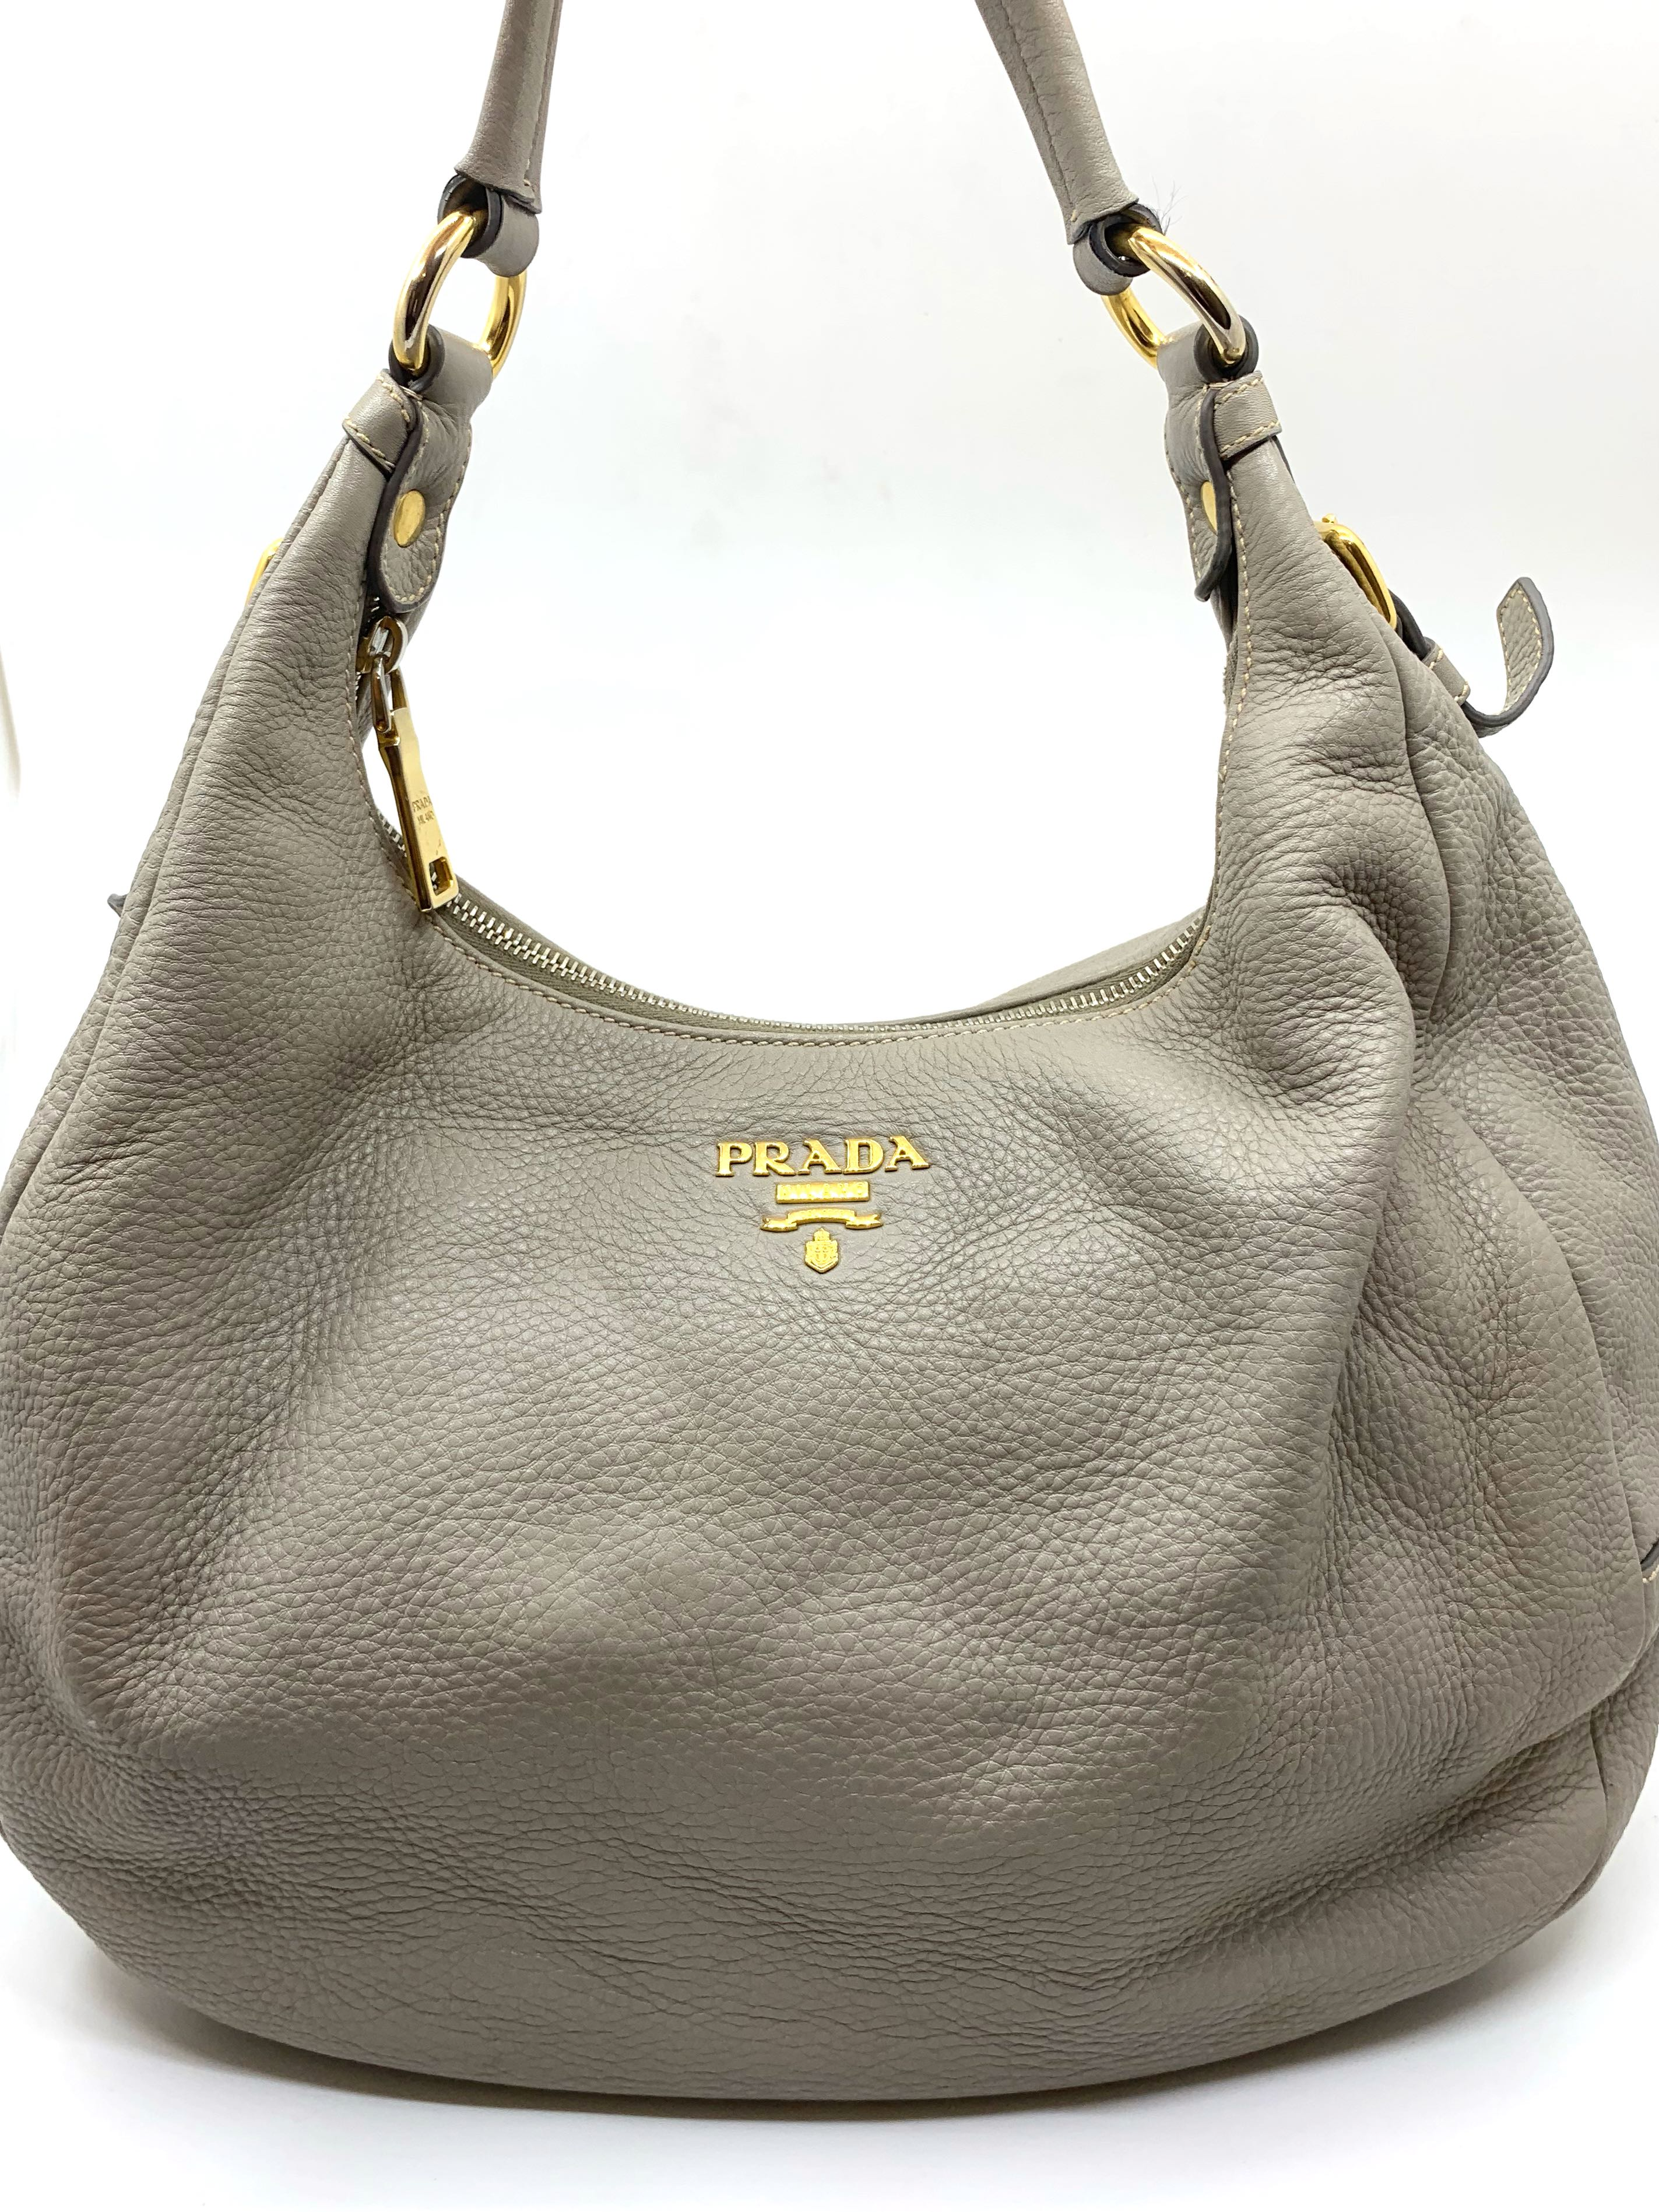 49e9251f6074 Prada Vitello Daino Hobo Medium Bag in Grey, Luxury, Bags & Wallets ...